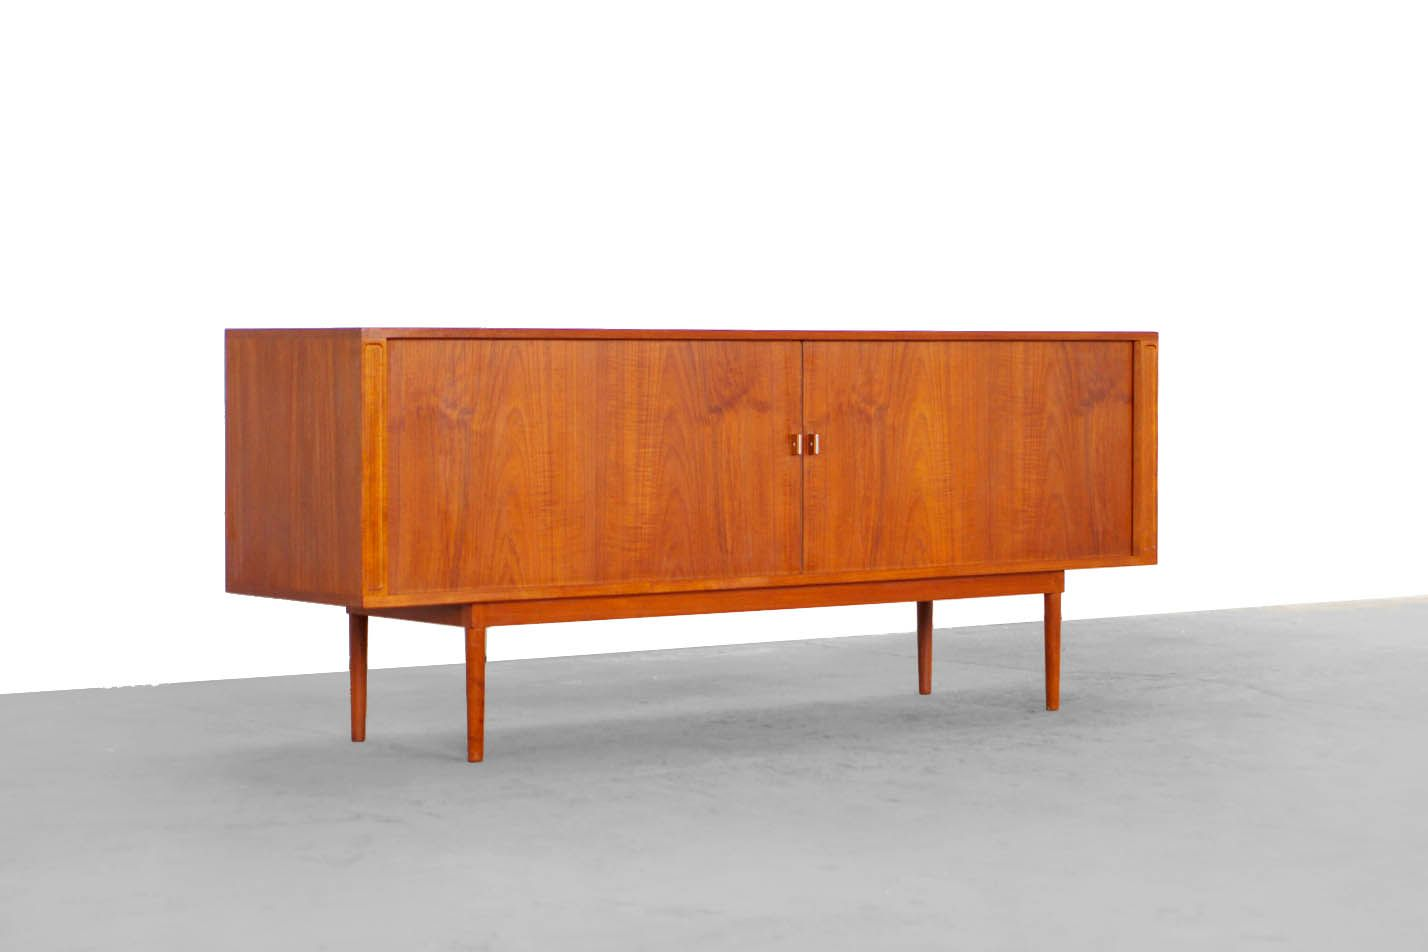 d nisches sideboard von jens harald quistgaard 1960 bei pamono kaufen. Black Bedroom Furniture Sets. Home Design Ideas